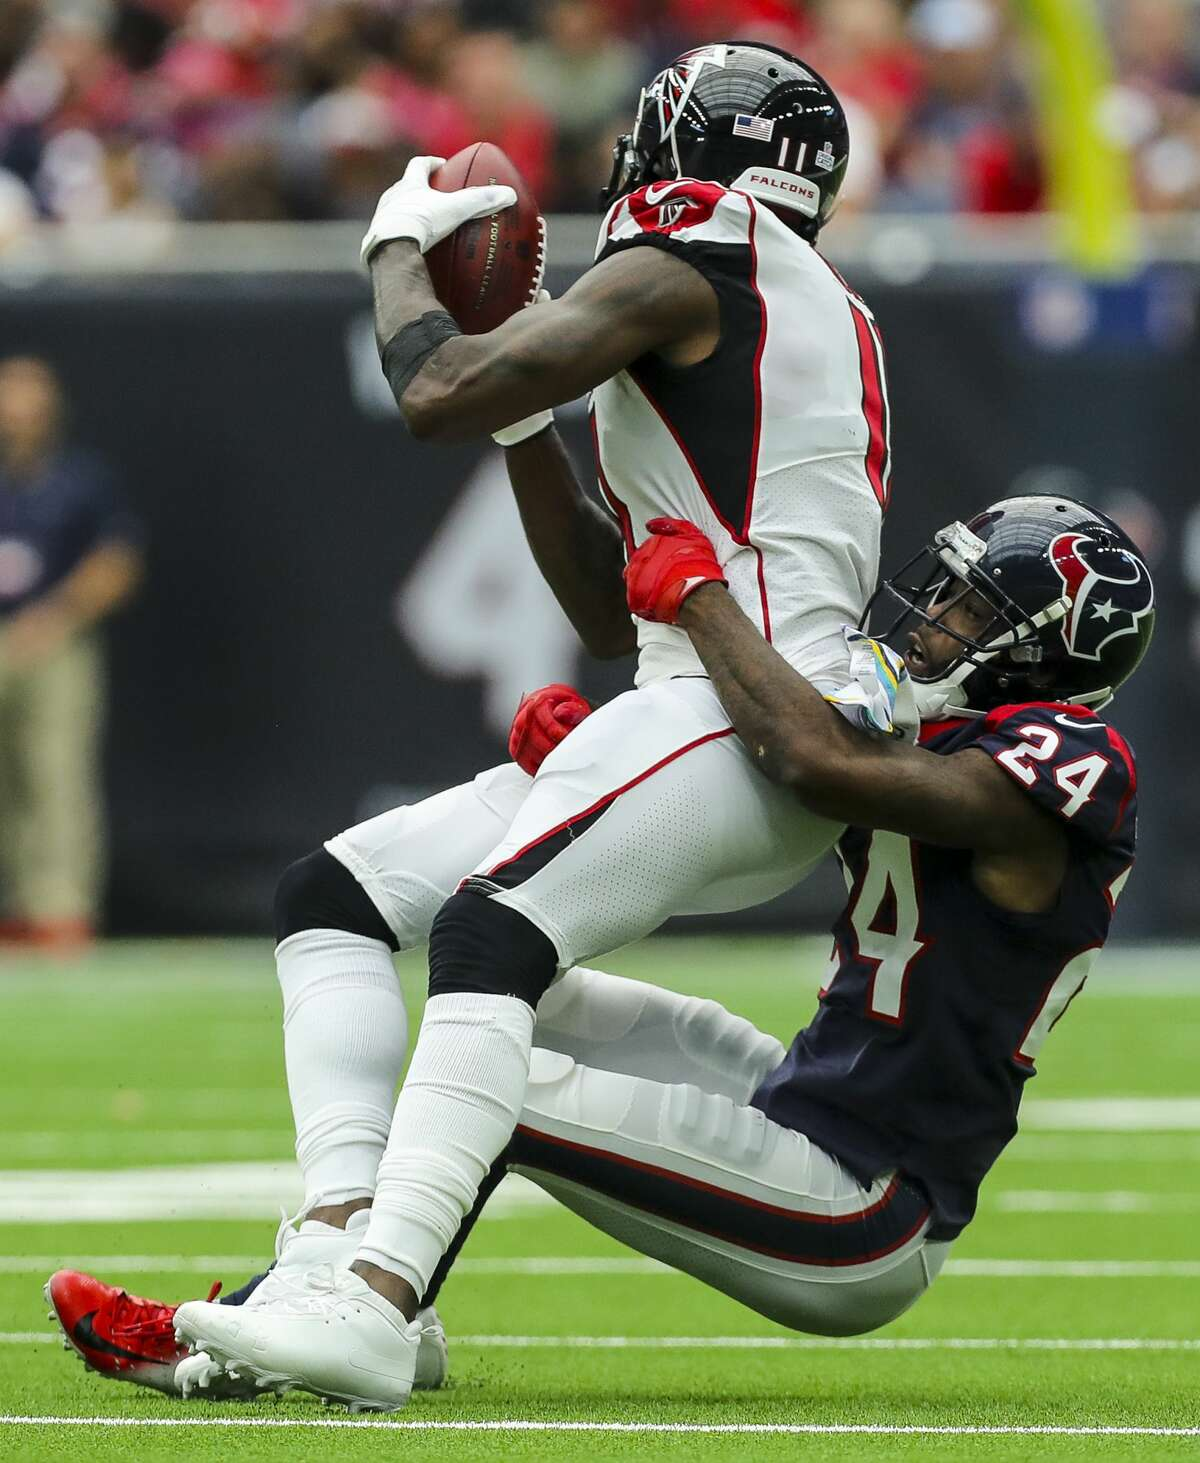 CONTAIN JULIO JONES Falcons wide receiver Julio Jones is 30 years old, but he's still at the top of his game. He ranks ninth in the NFL in receiving yards (526) and 12th in receptions (40). In his ninth season out of Alabama, Jones has remained one of the league's premier deep-ball and red-zone pass catchers. The six-time Pro Bowler is the focal point of Atlanta's prolific passing offense, which ranks second in the NFL. The Seahawks' secondary, which has been inconsistent containing explosive plays, will have their hands full Sunday. As bad as the Falcons have been to start the season, their passing game is the one thing Seattle can'tmess around with.